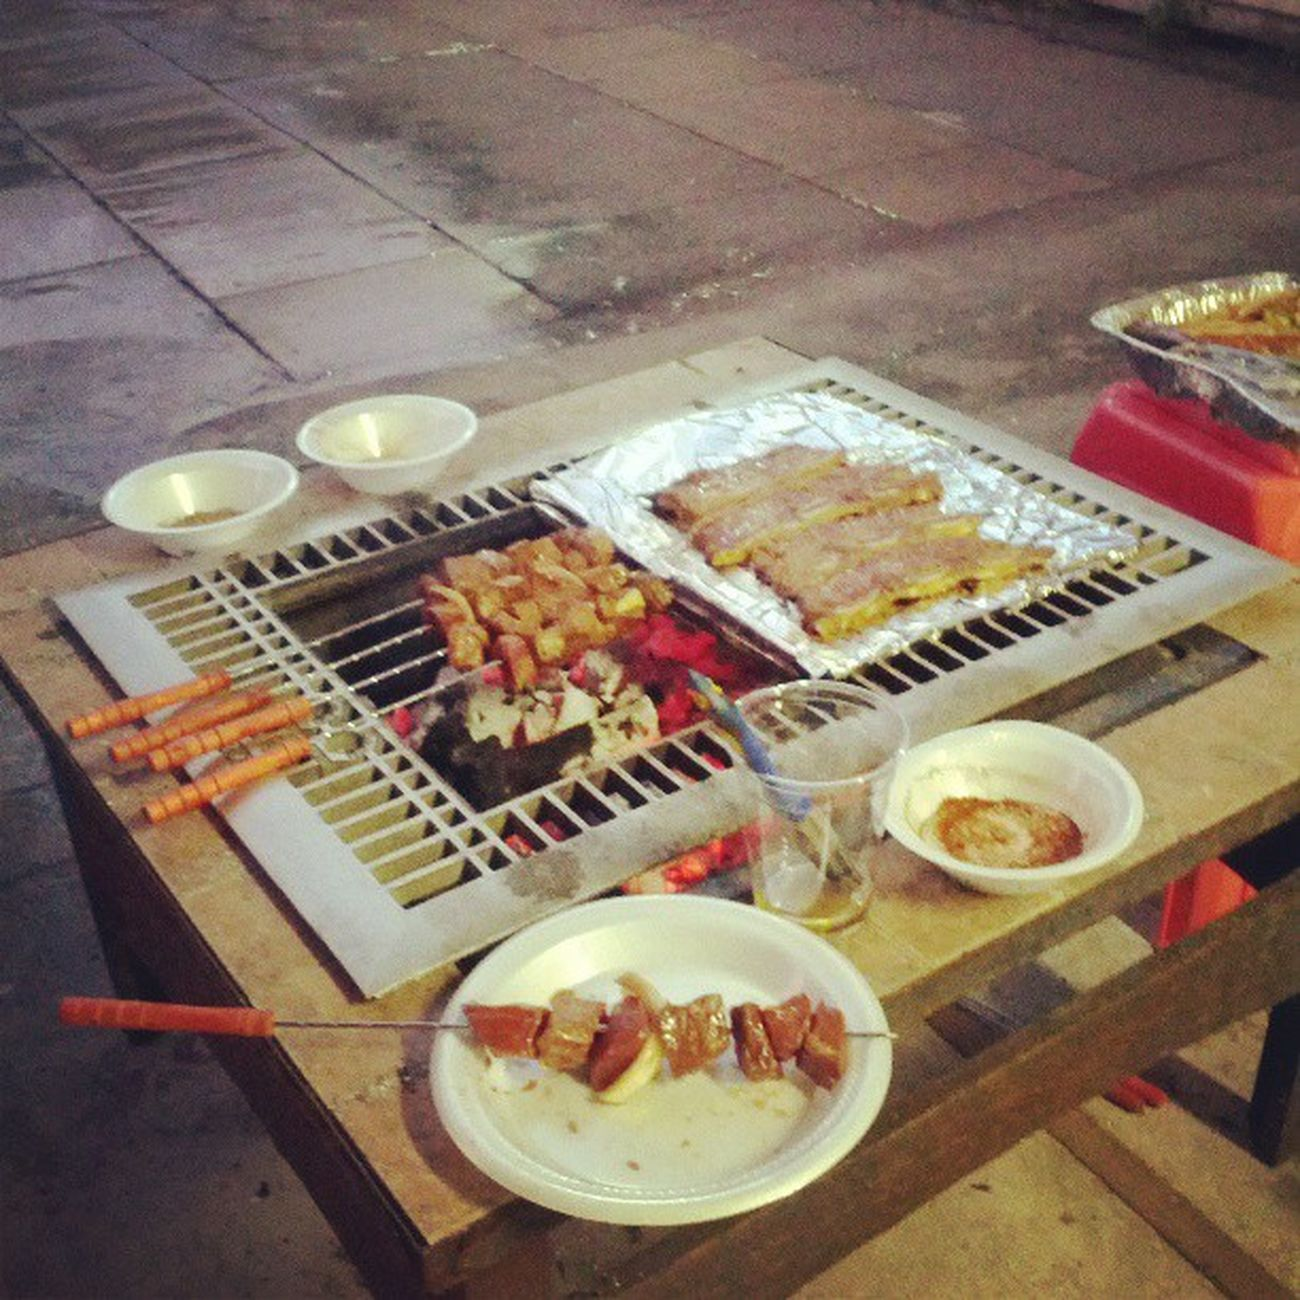 BBQ in a raining day! Raining BBQ Beef Kabob party instaphoto foodoftheday foodporn picoftheday